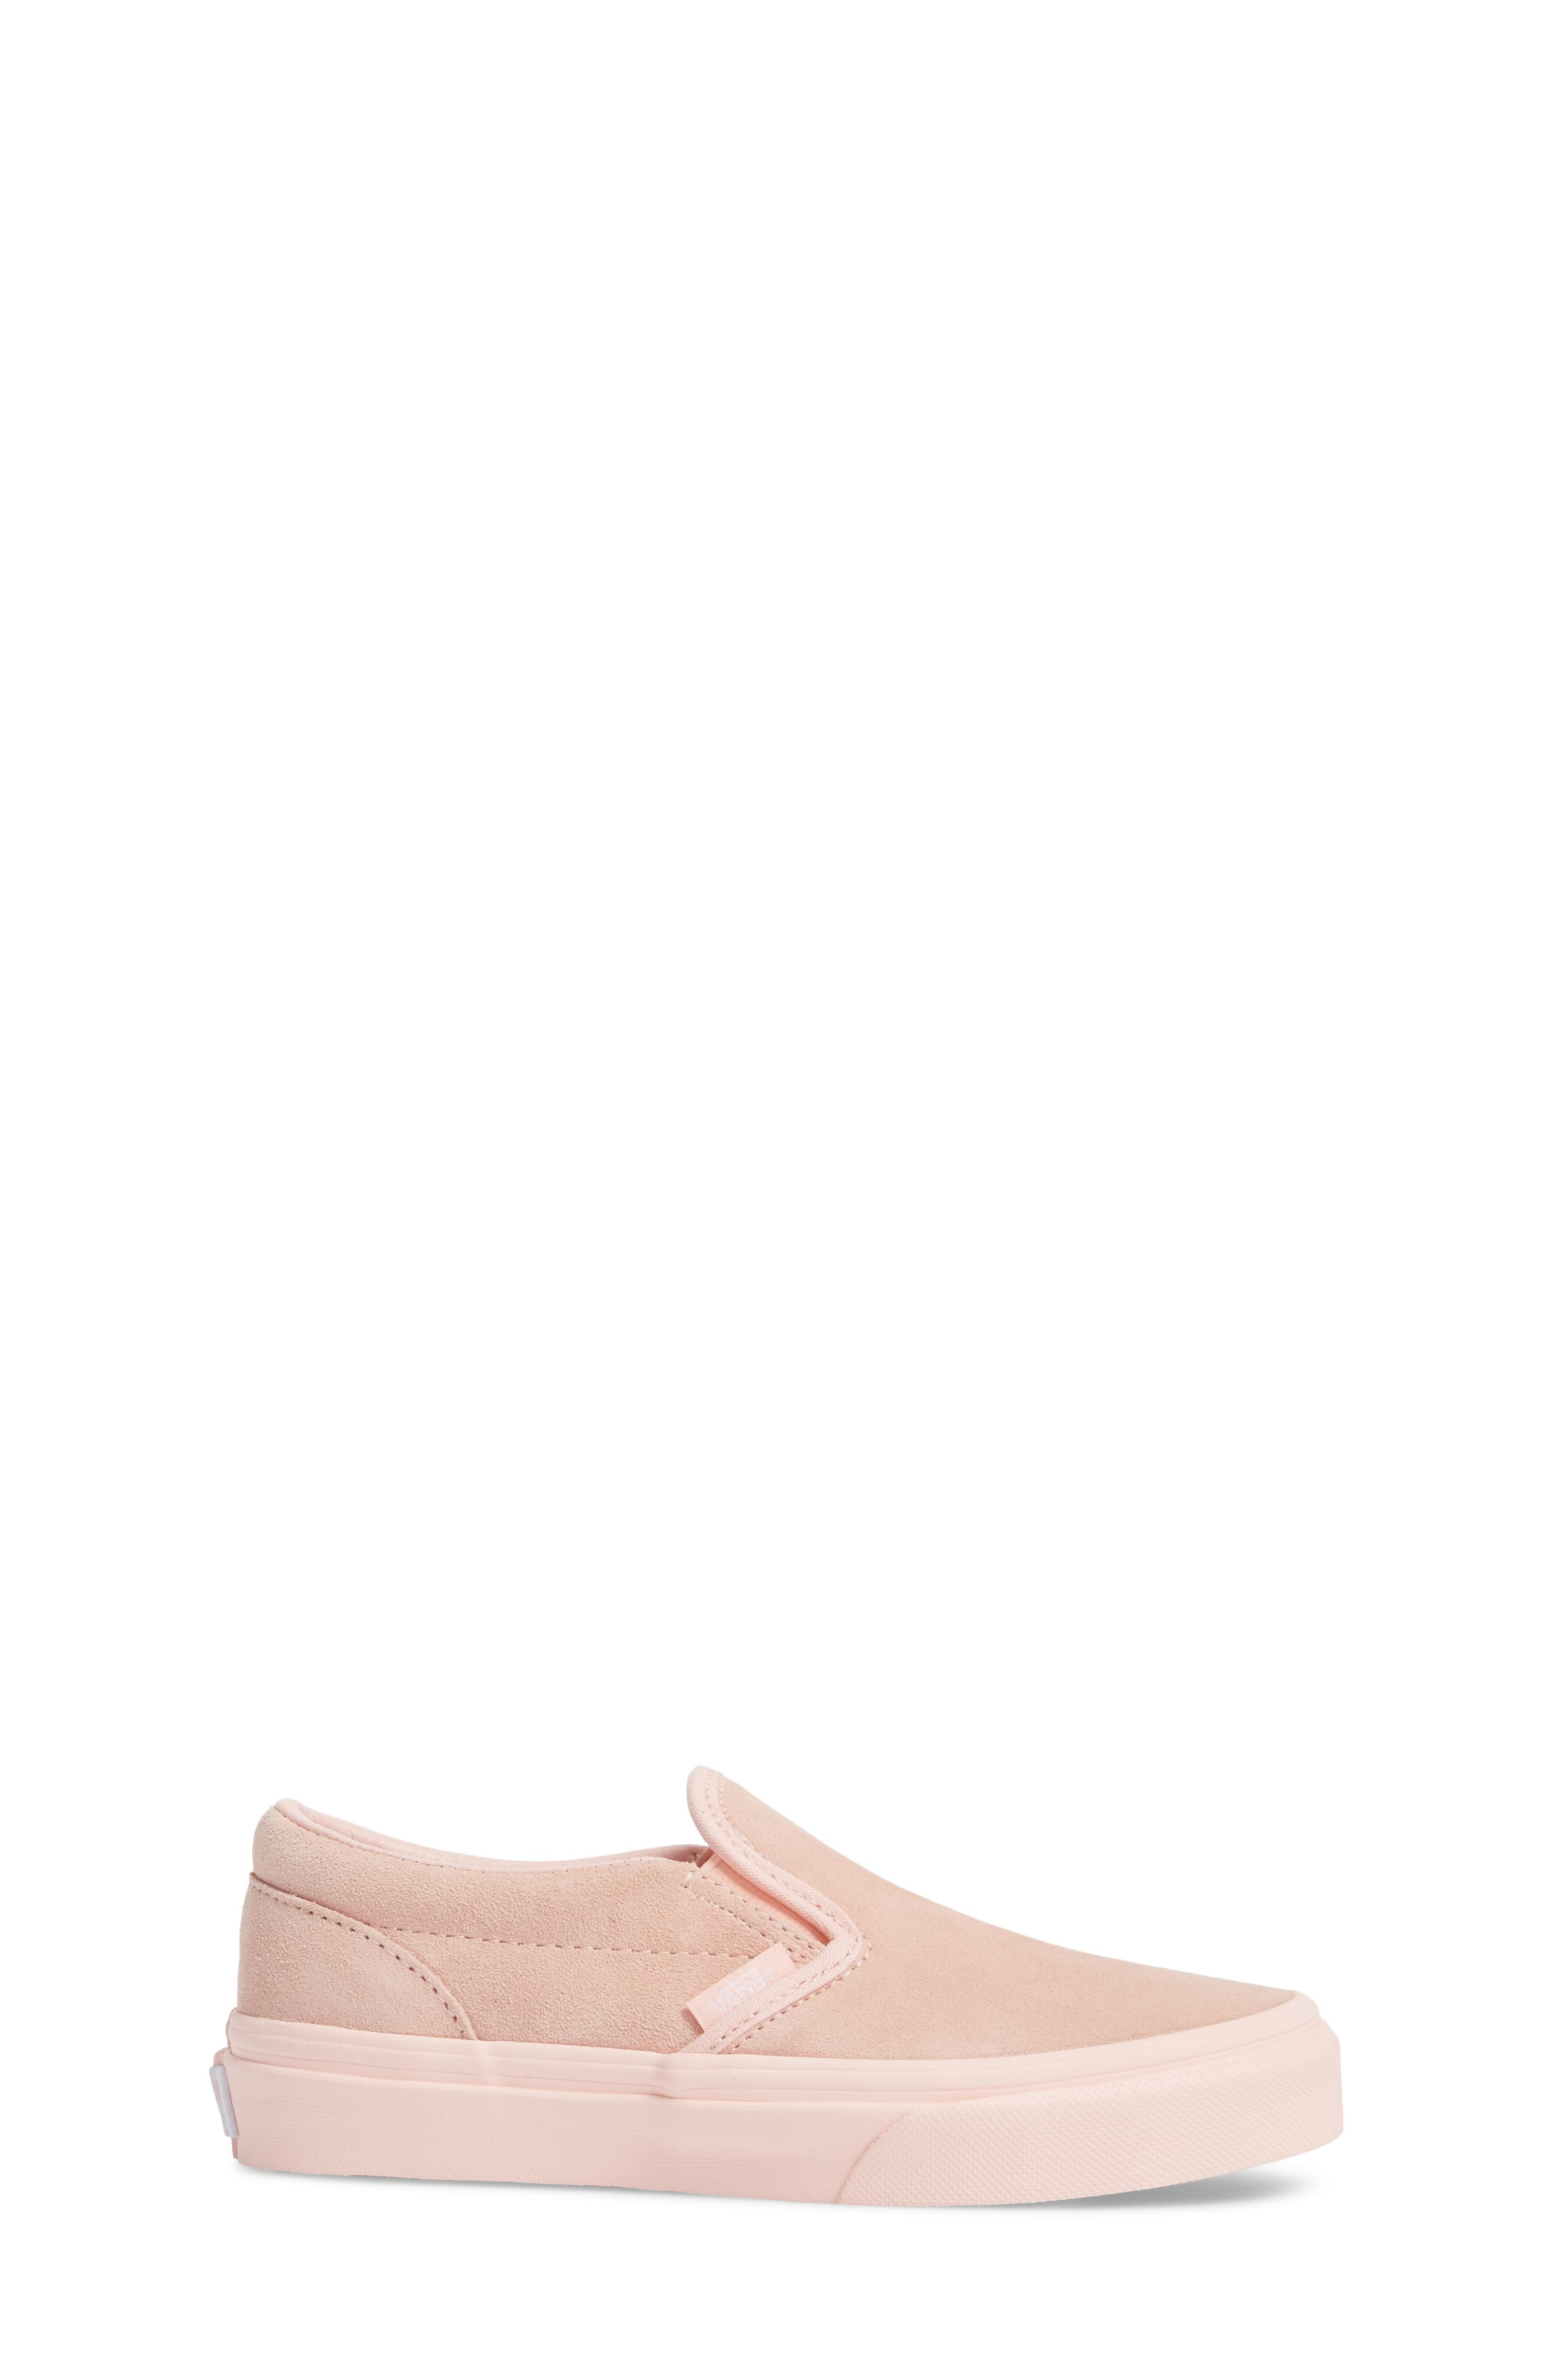 Classic Slip-On Sneaker,                             Alternate thumbnail 3, color,                             Suede Mono/ English Rose